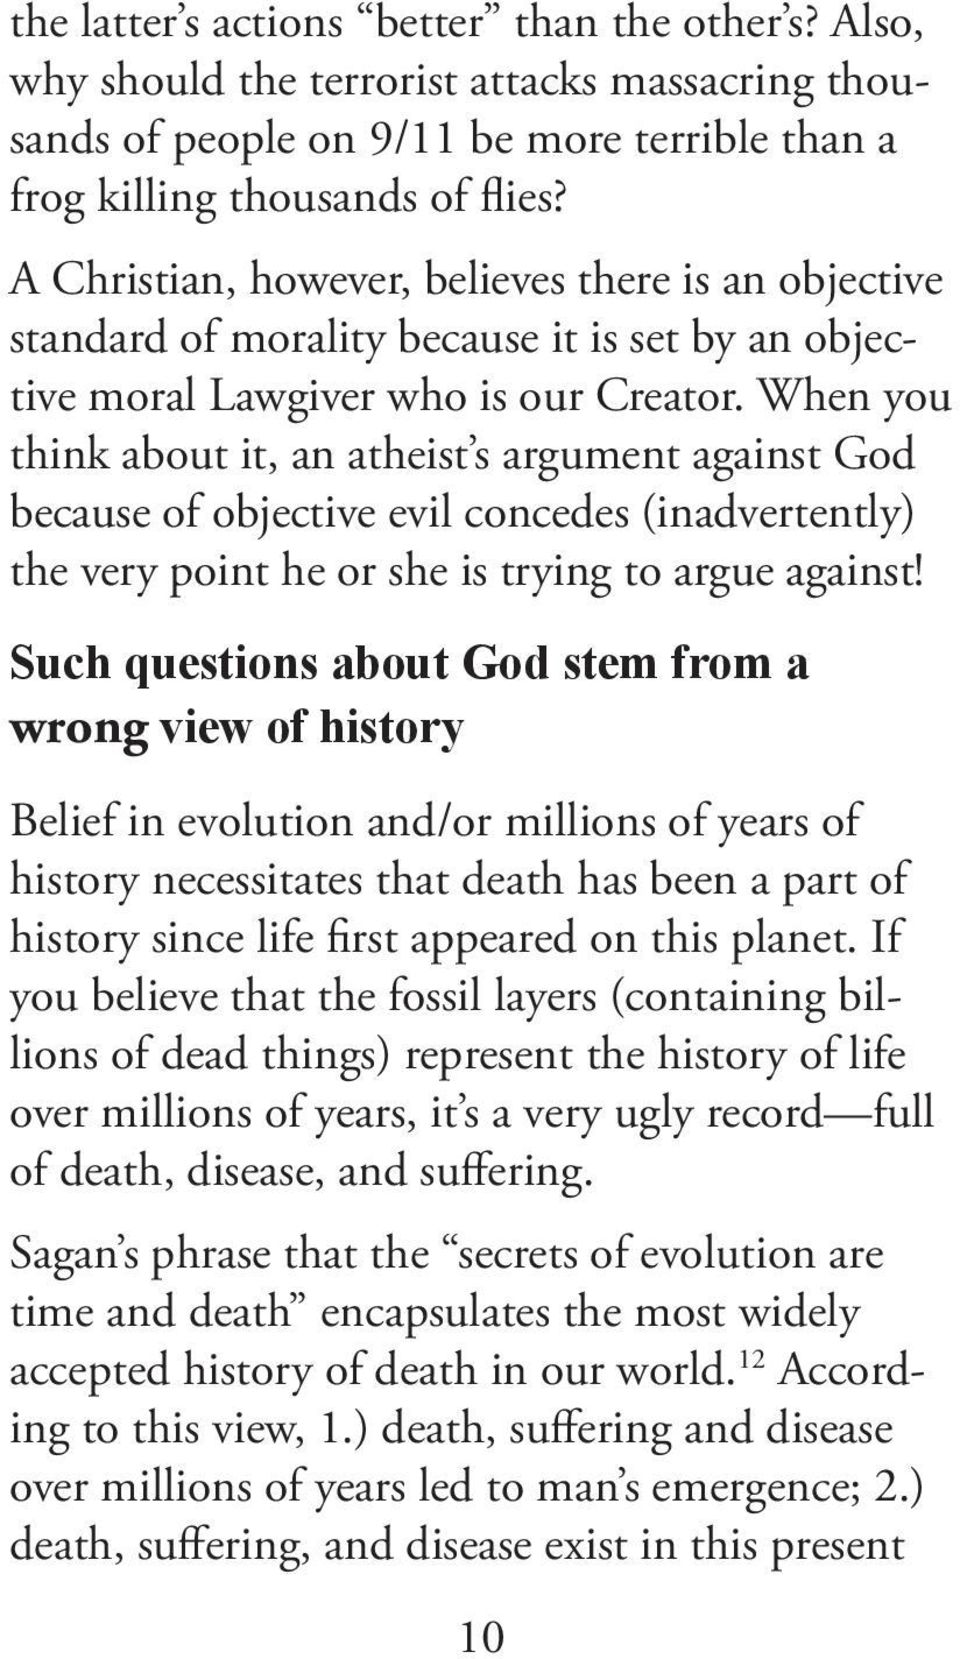 When you think about it, an atheist s argument against God because of objective evil concedes (inadvertently) the very point he or she is trying to argue against!